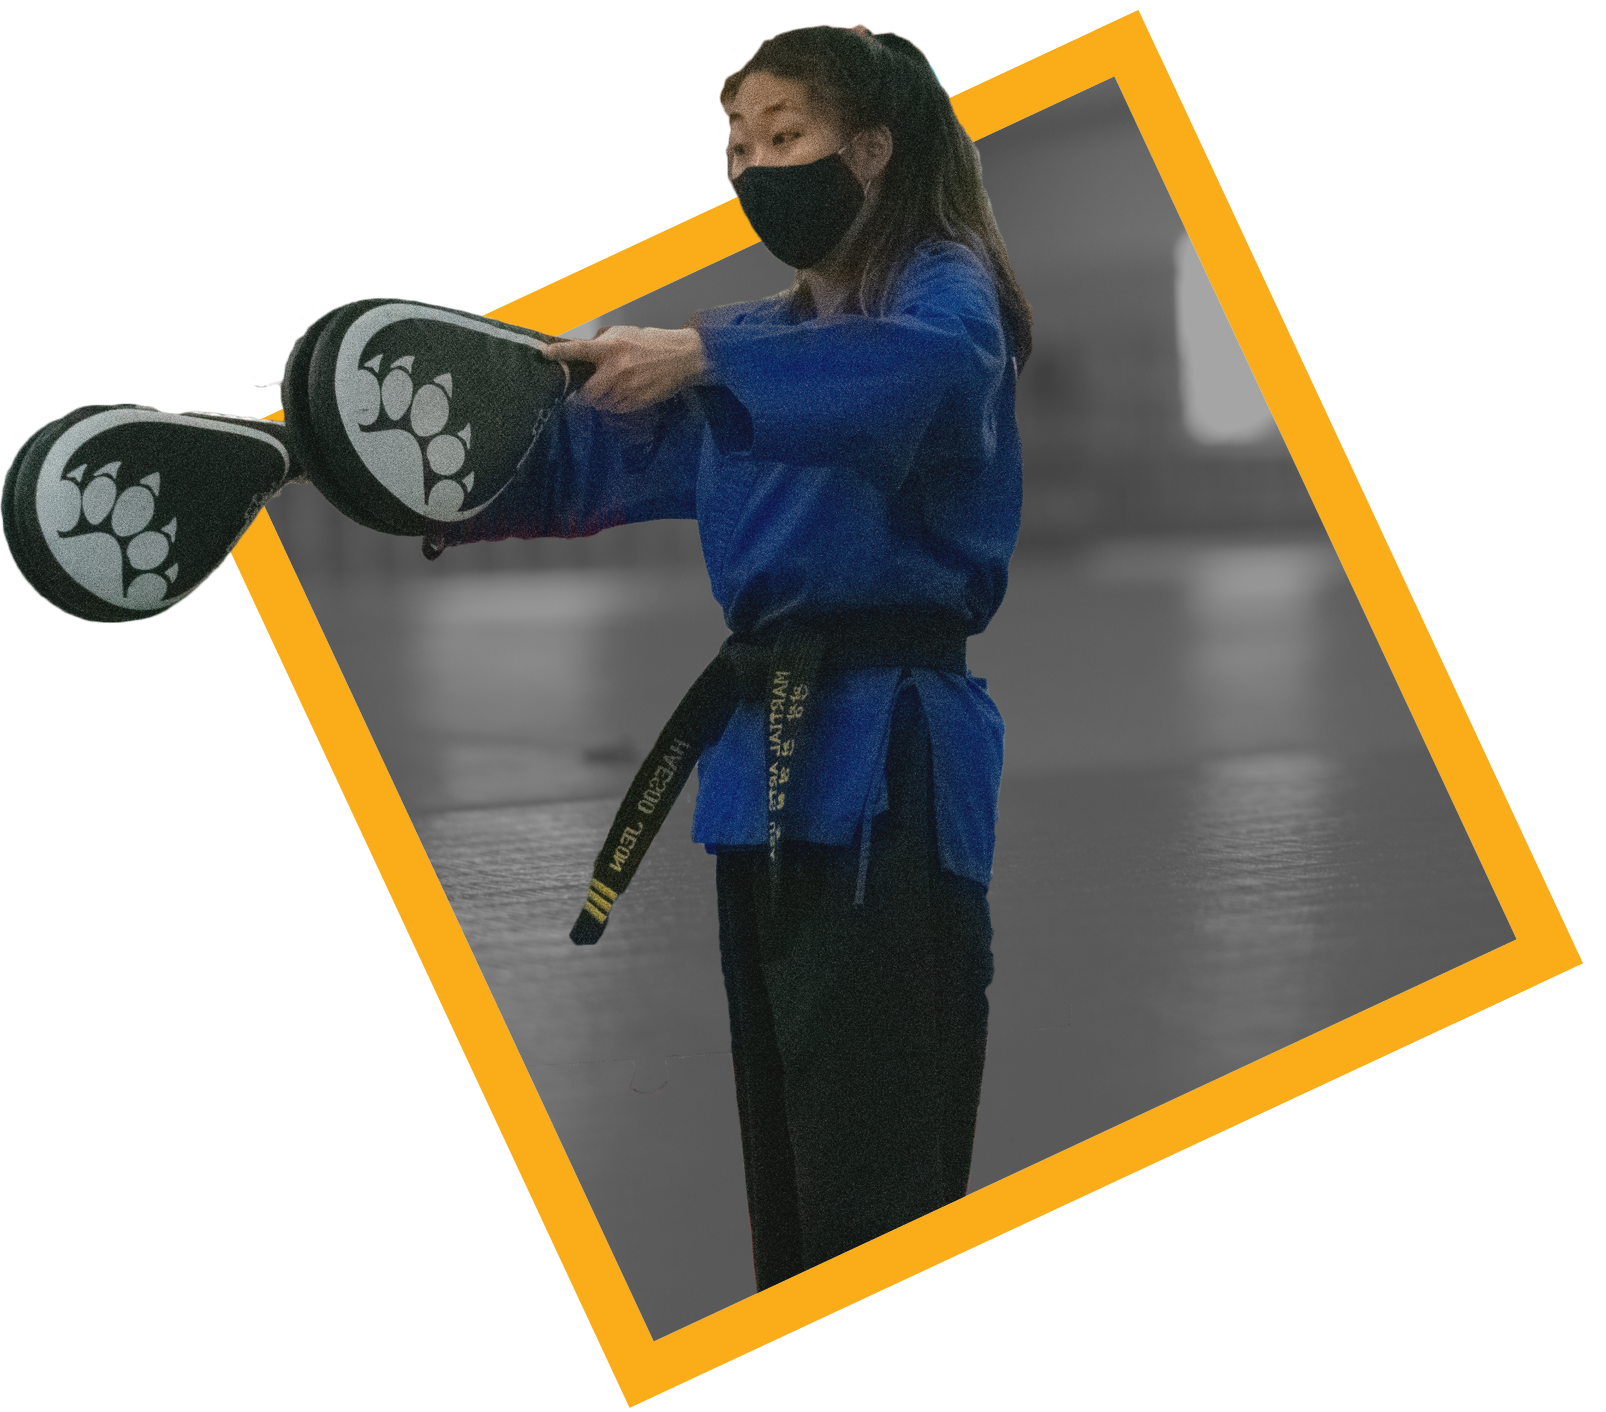 Instructor holding pads for students to practice taekwondo.